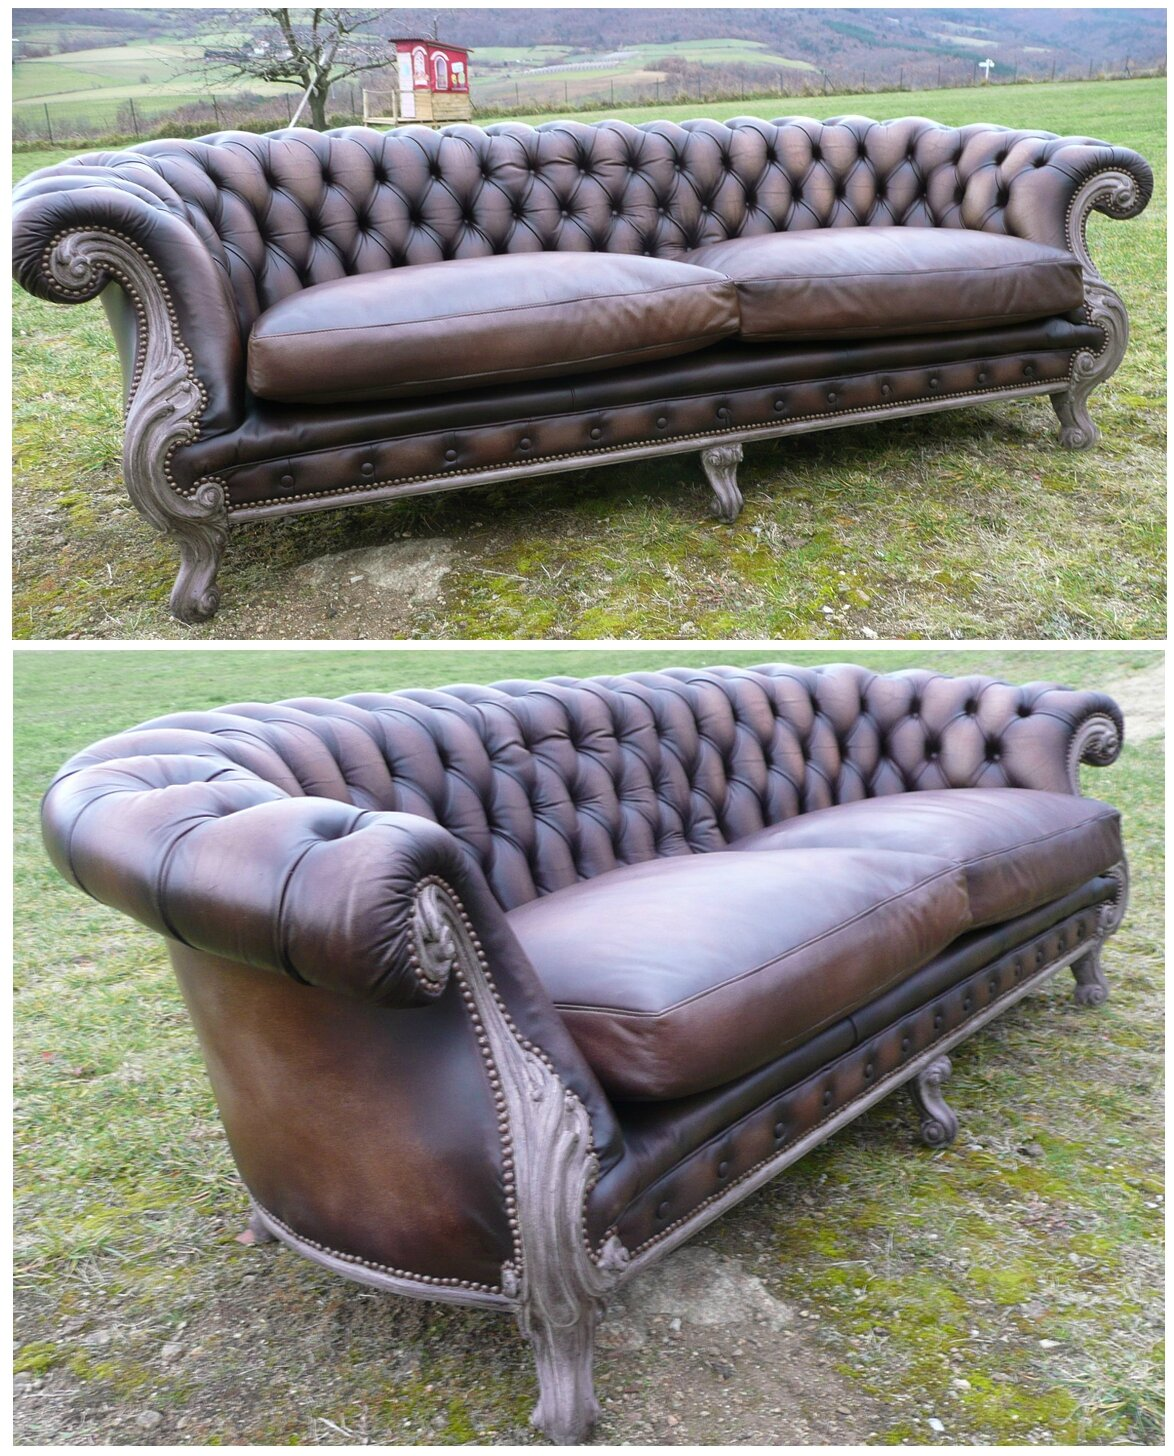 Atelier ka - Canape chesterfield ancien ...